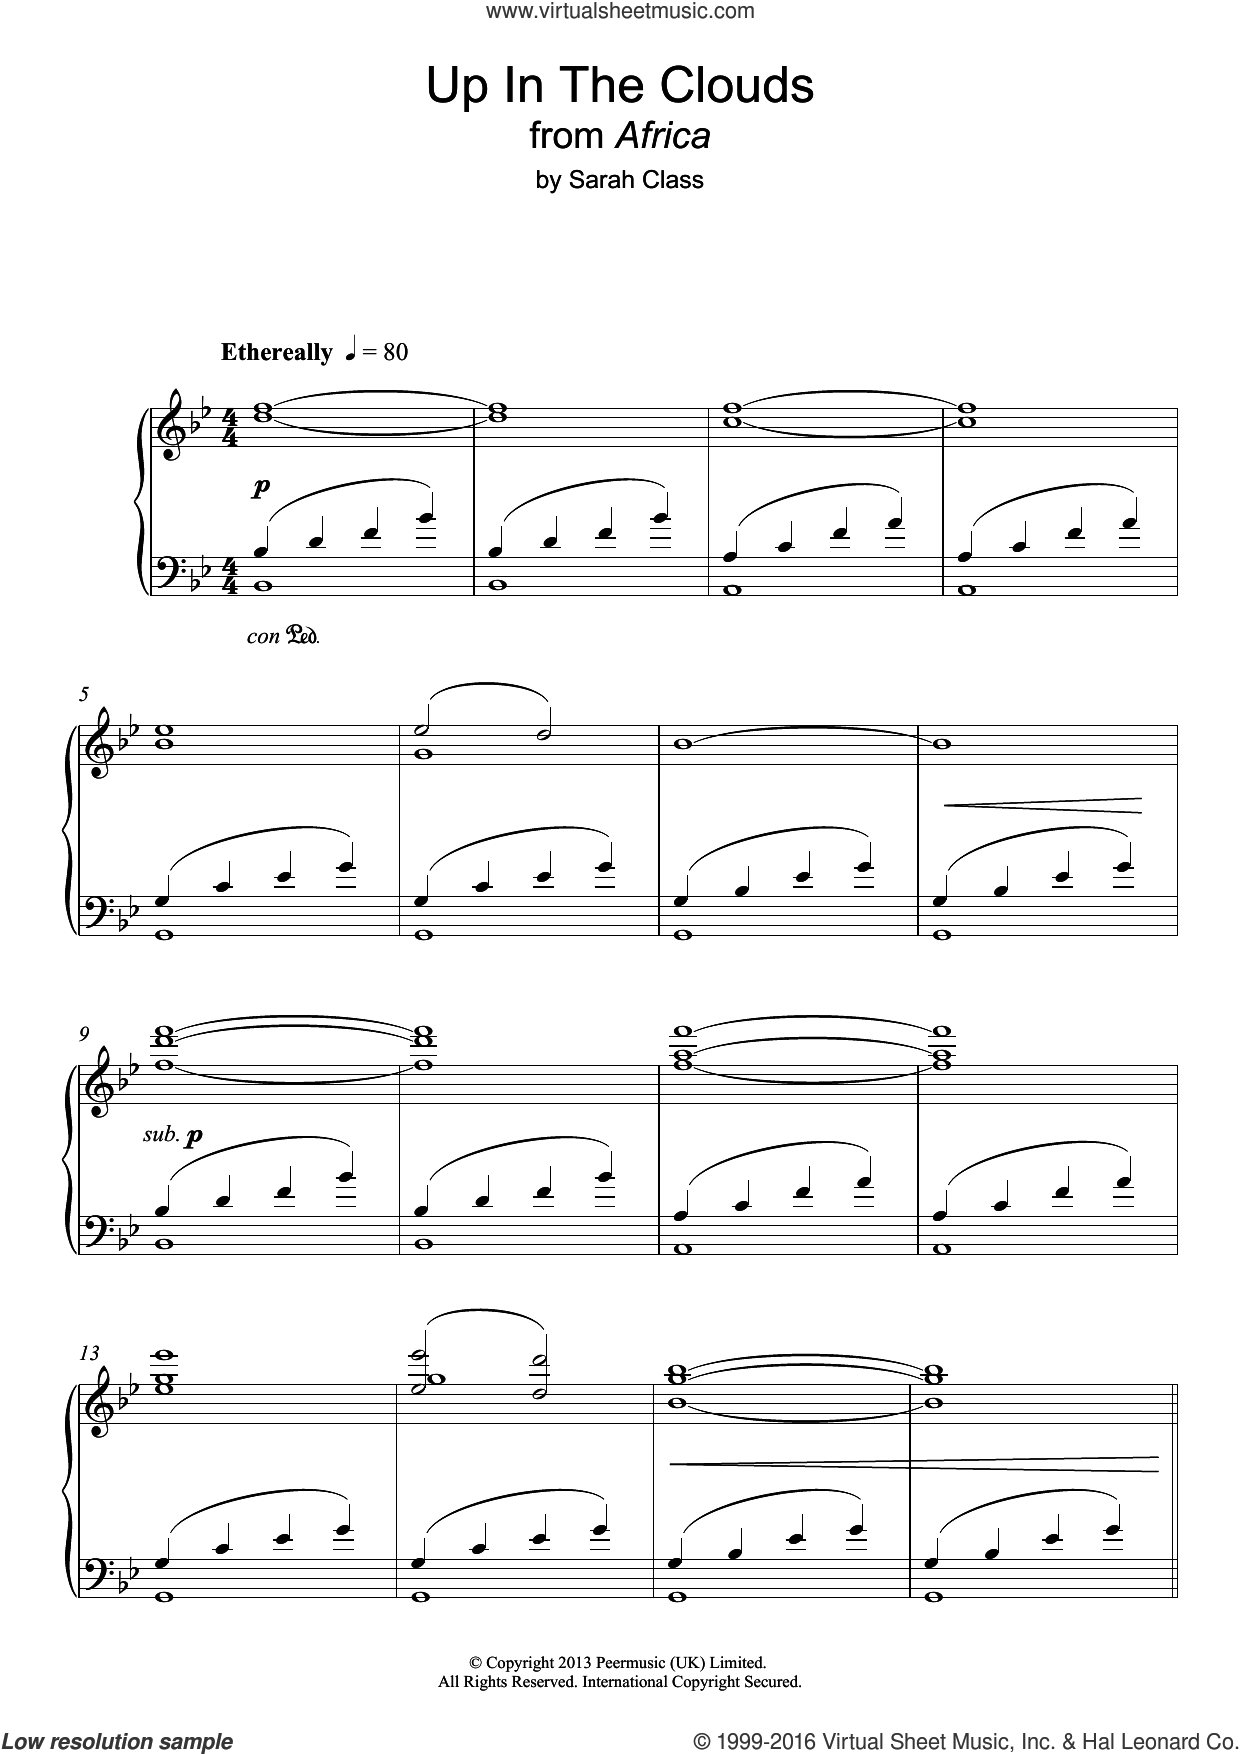 Up In The Clouds sheet music for piano solo by Sarah Class. Score Image Preview.